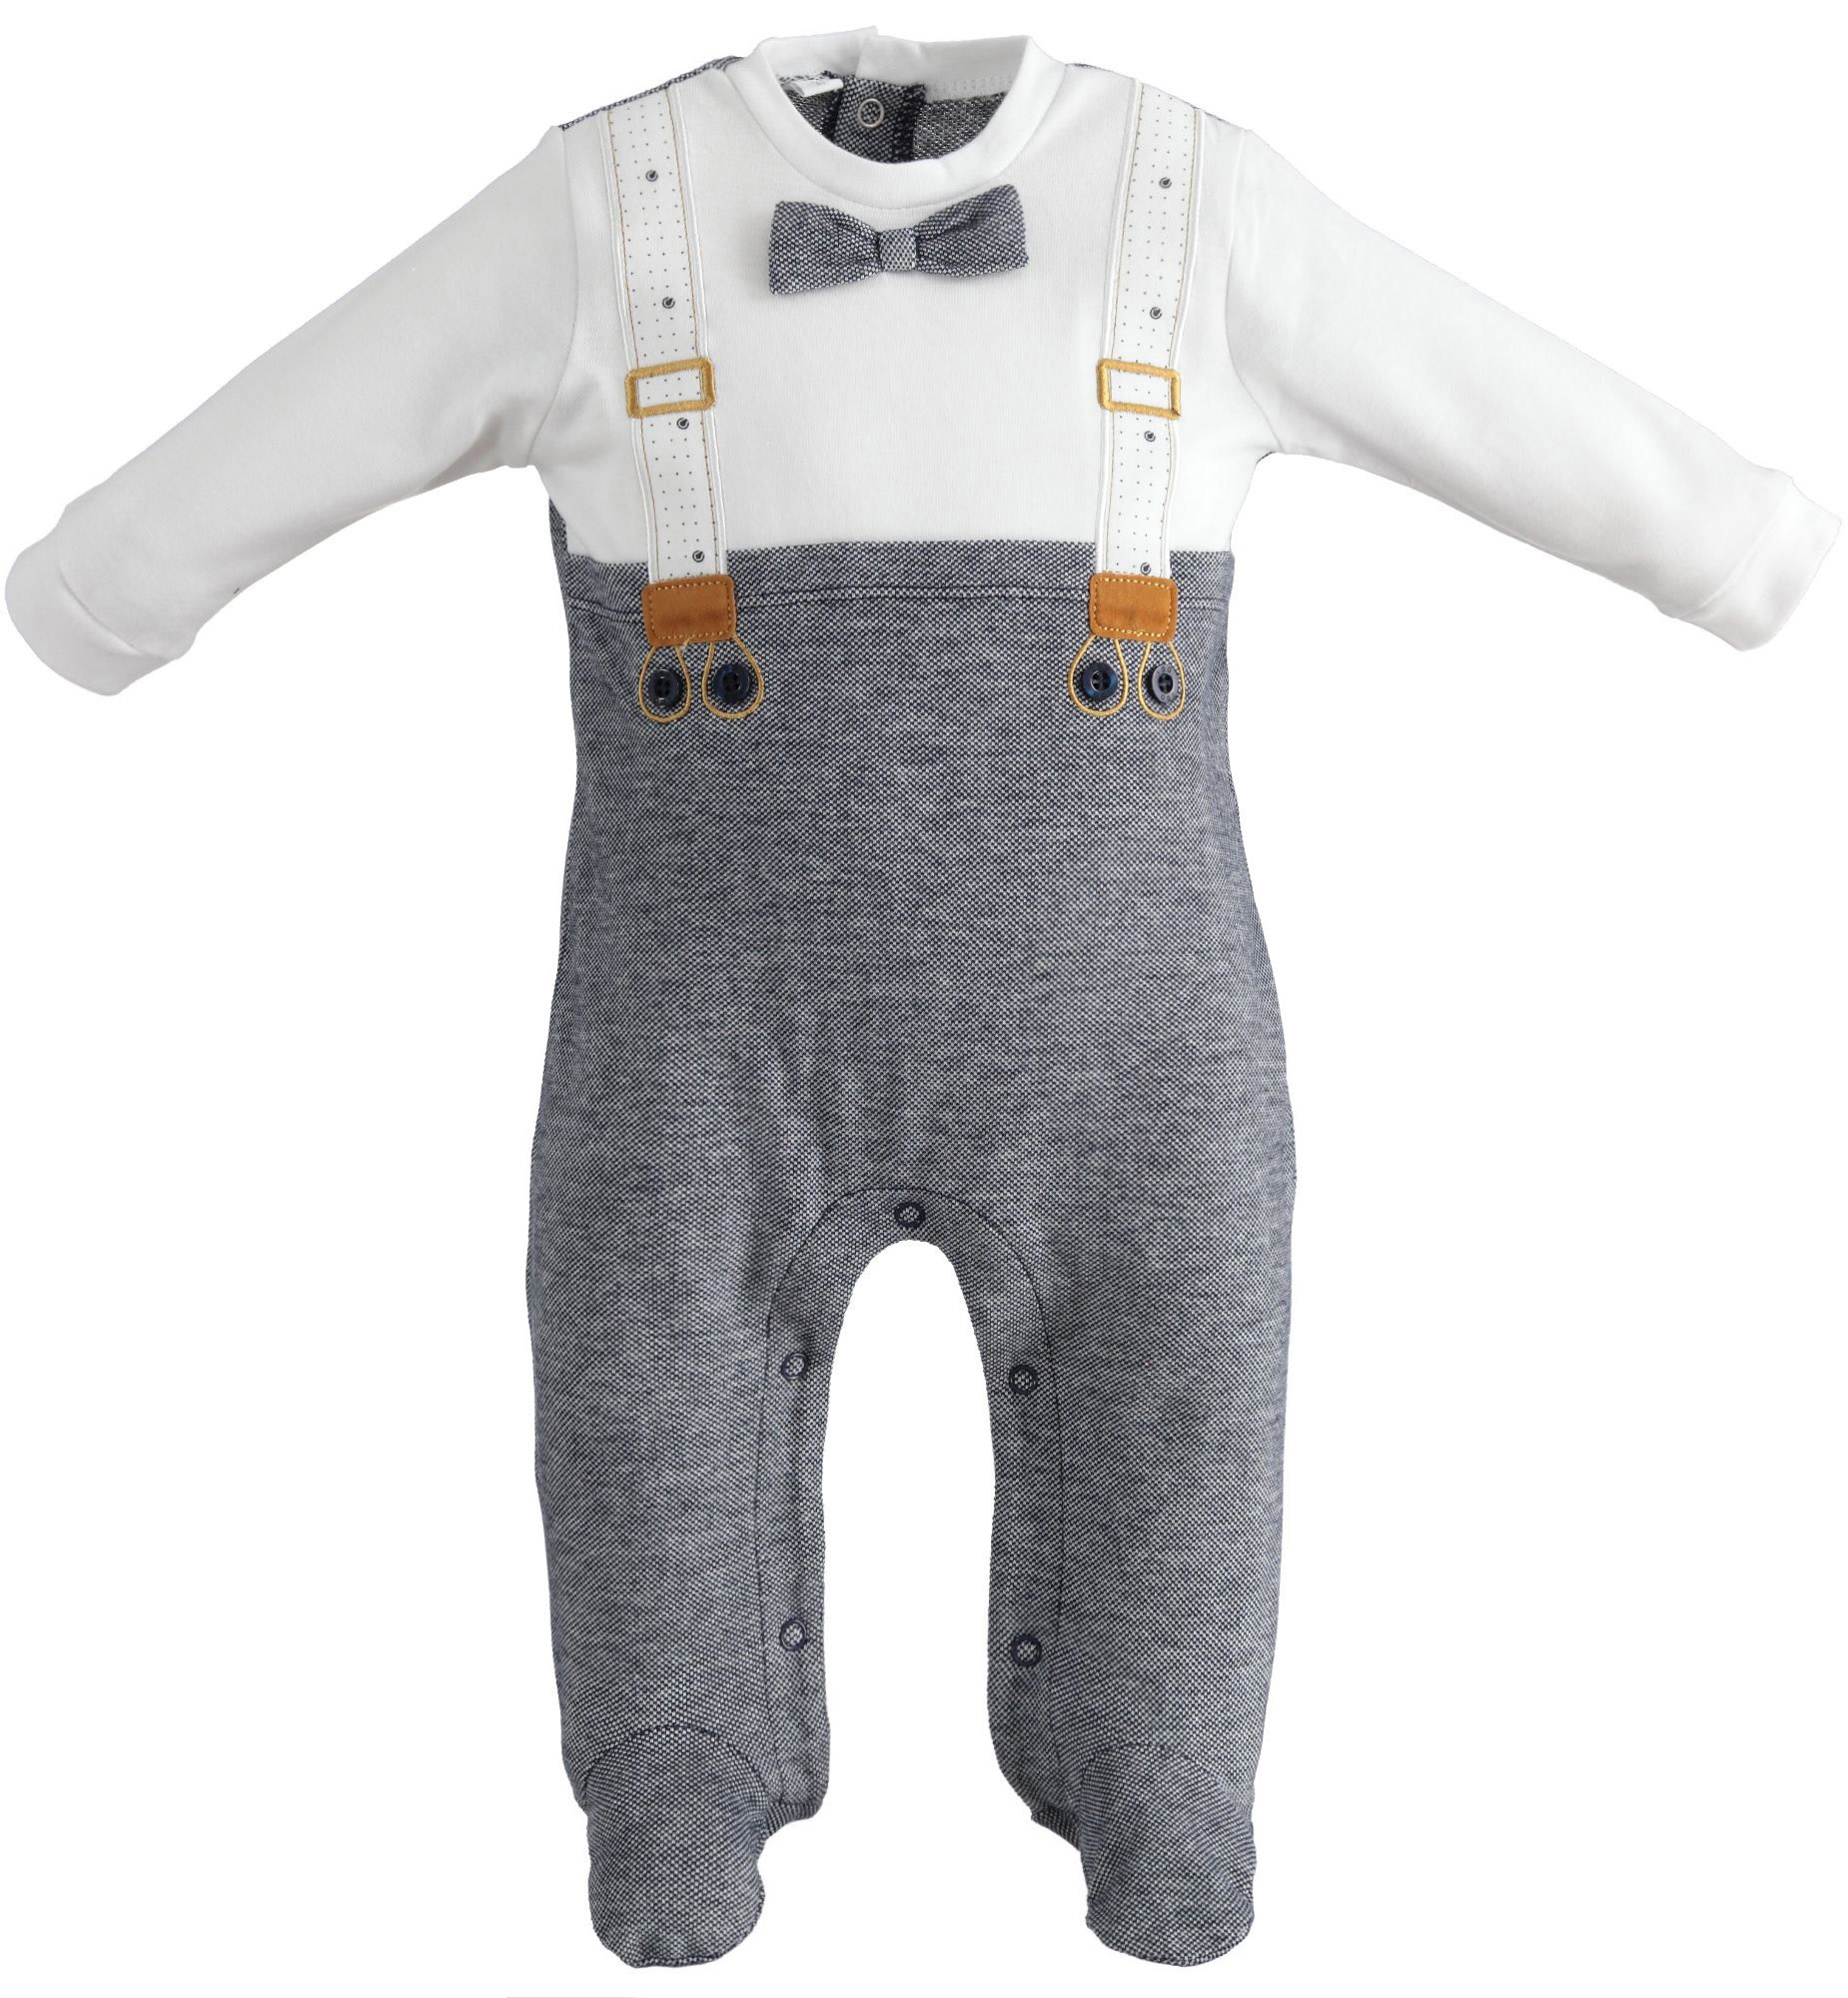 iDo iDO SS20 Baby Boys All in One With Feet Bow tie and braces J063